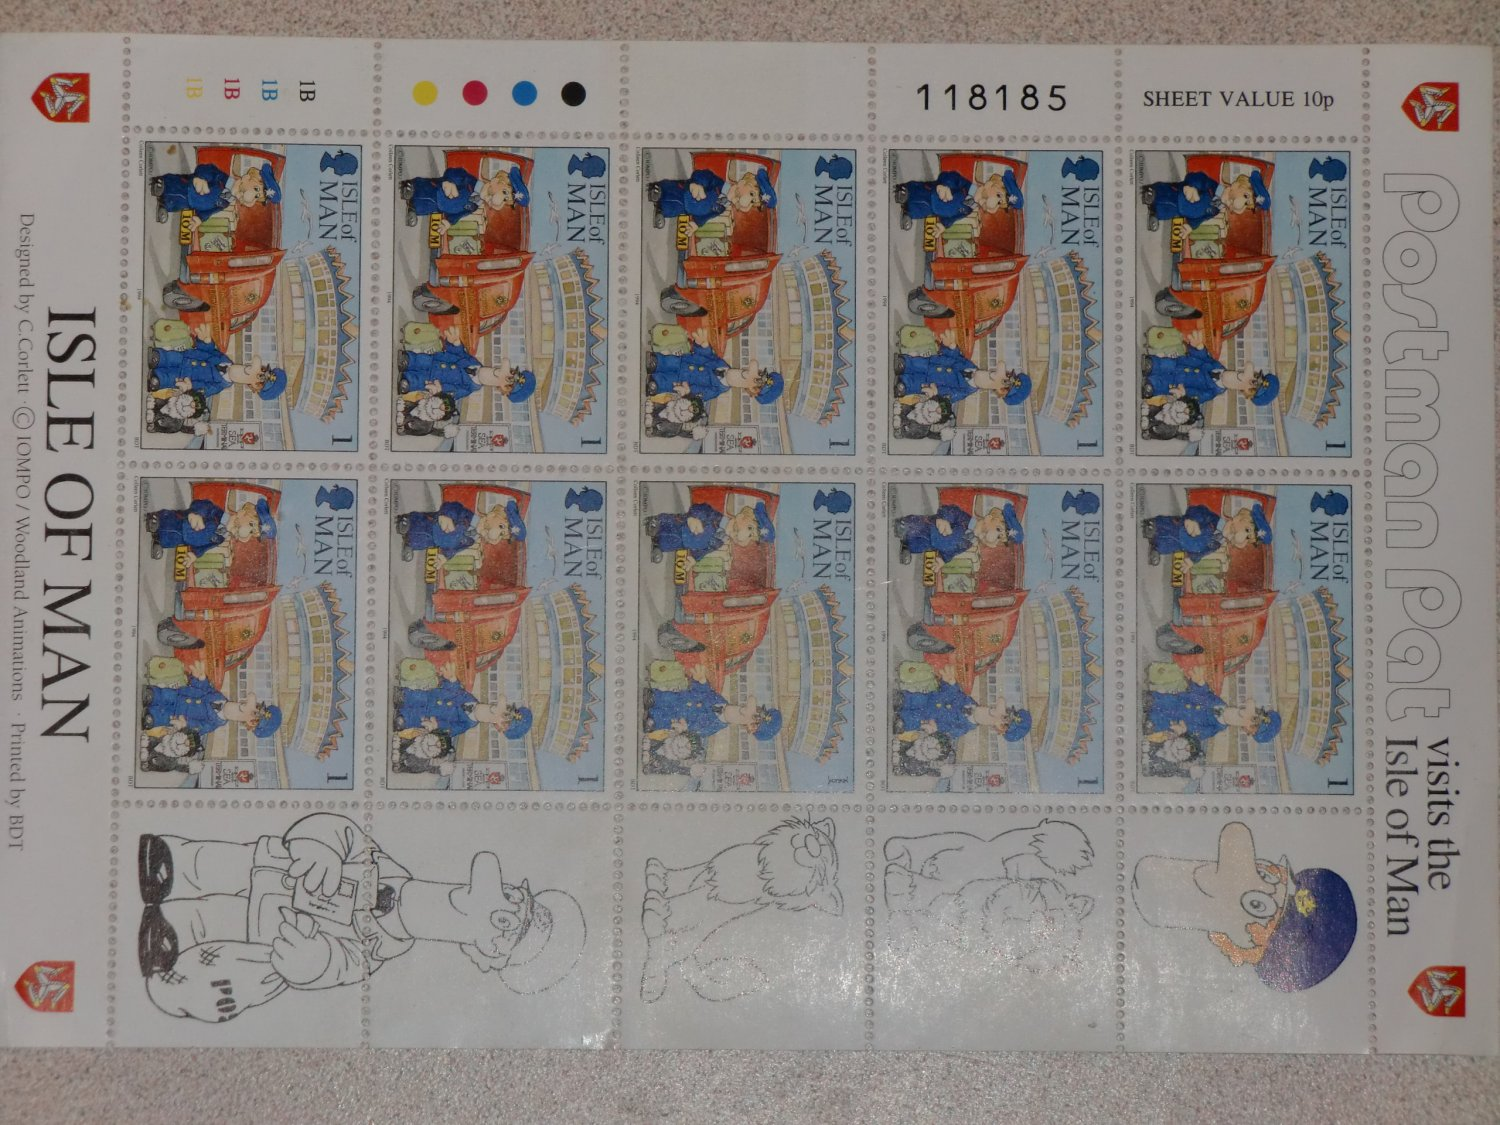 Isle Of Man United Kingdom  City pictures : Postman Pat stamps, Isle of Man United Kingdom, Britain,England,